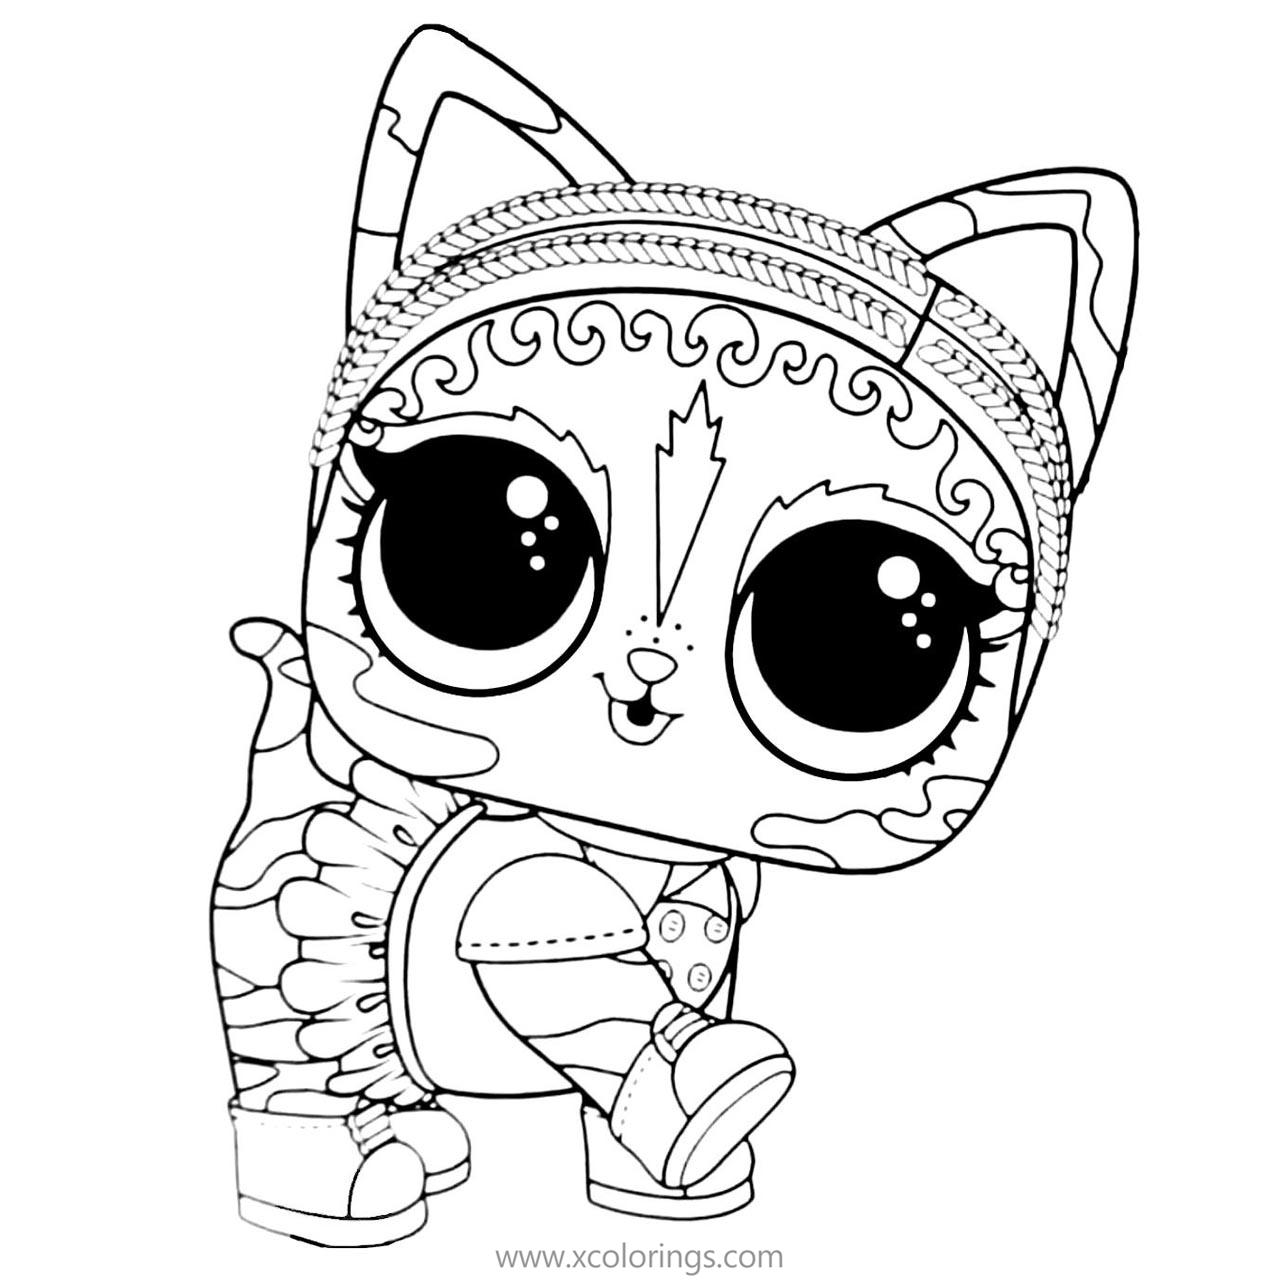 Lol Pets Coloring Pages Agent Kitty Xcolorings Com